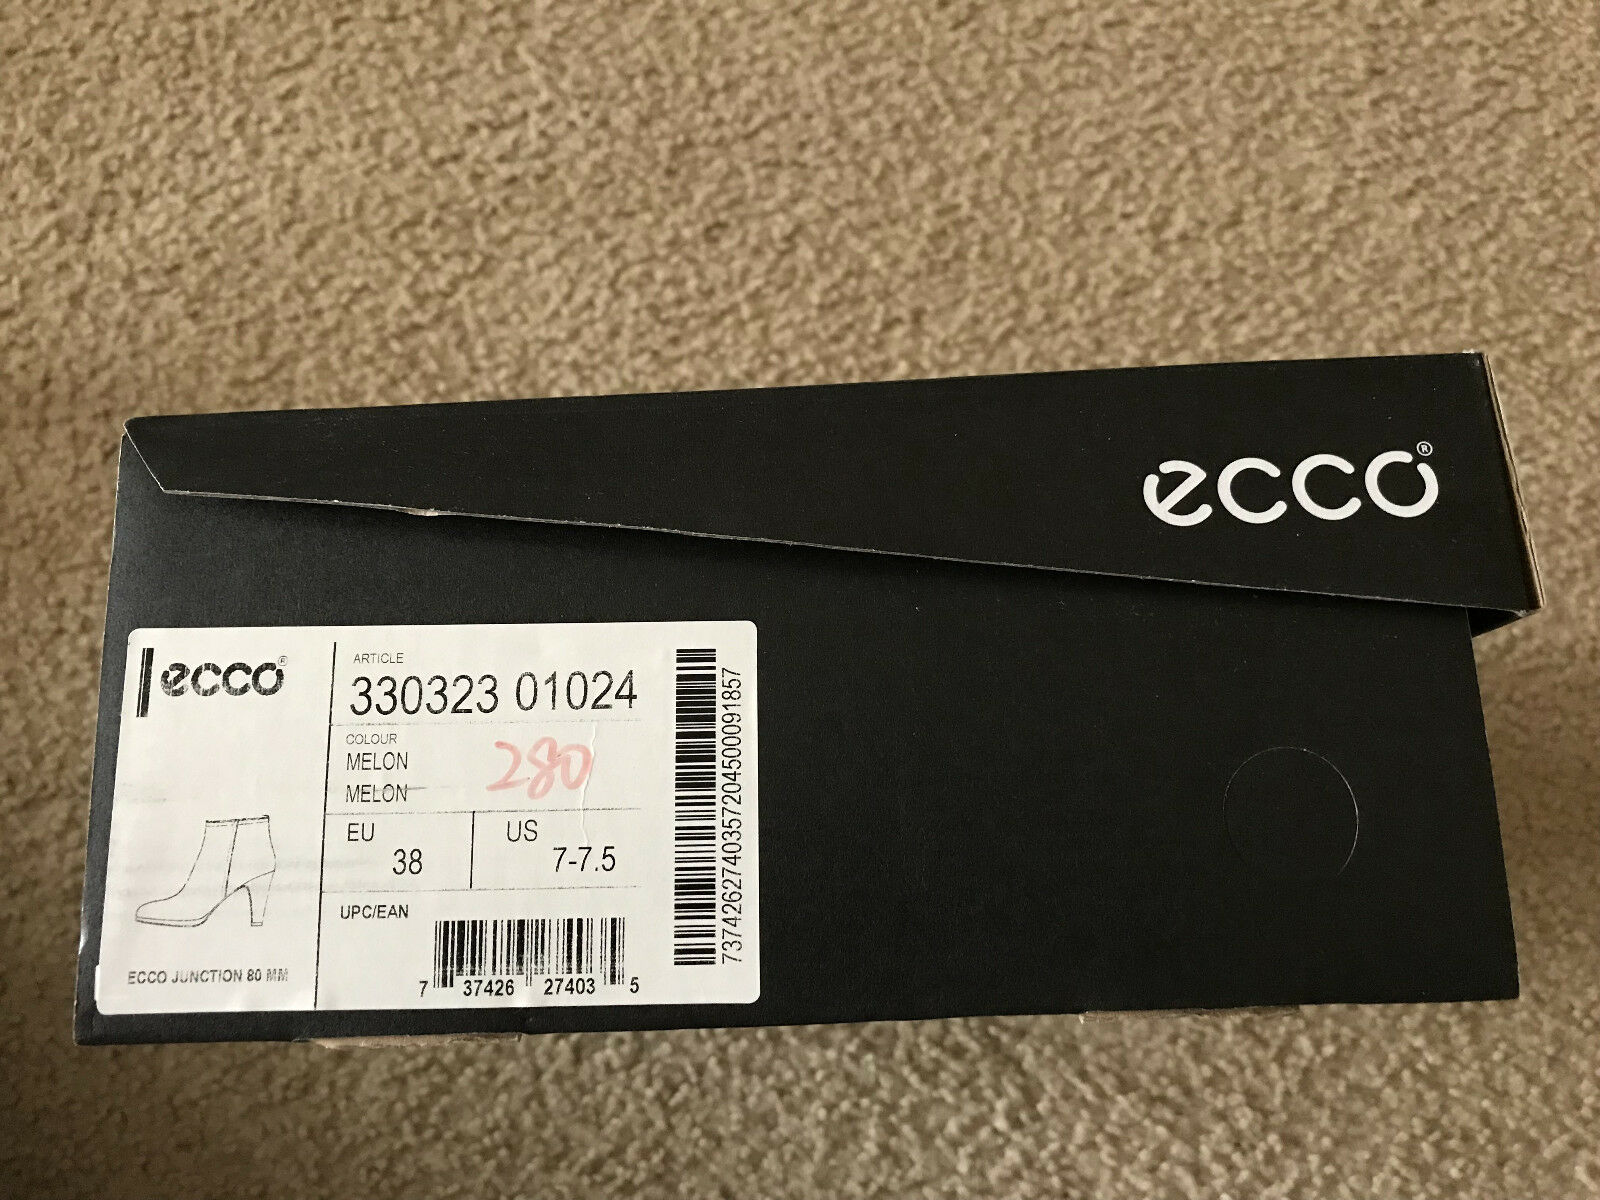 NIB ecco JUNCTION boot 80mm platfrom ankle boot JUNCTION MELON EU38/US7-7.5 c81090